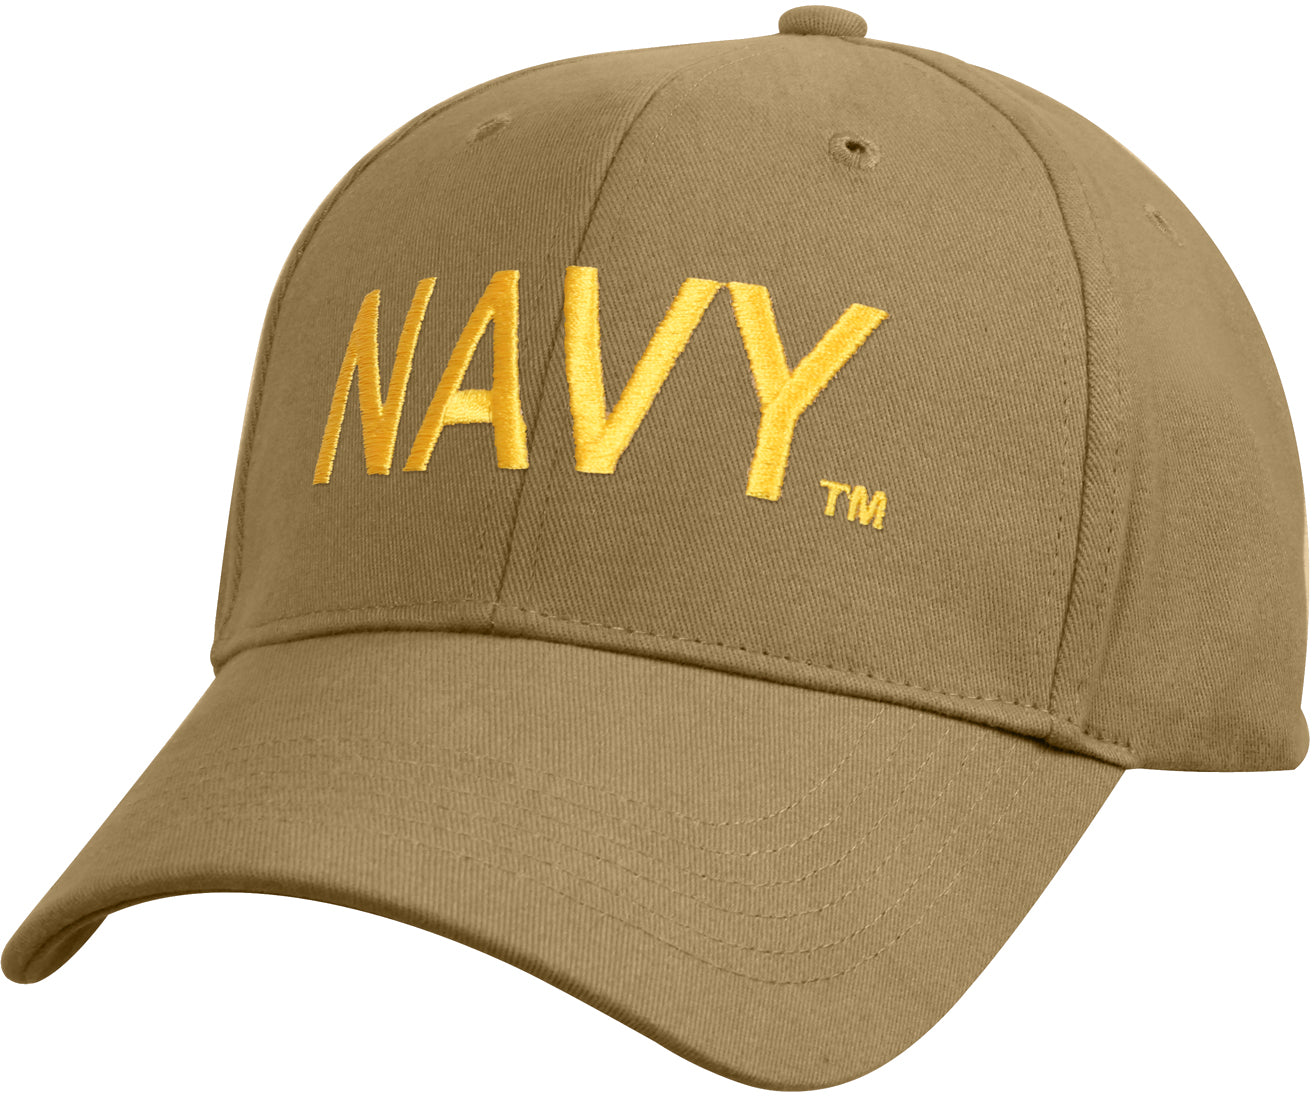 online store 9a0e9 d9aa9 ... buy coyote brown low profile navy cap army navy store 5b170 d923a